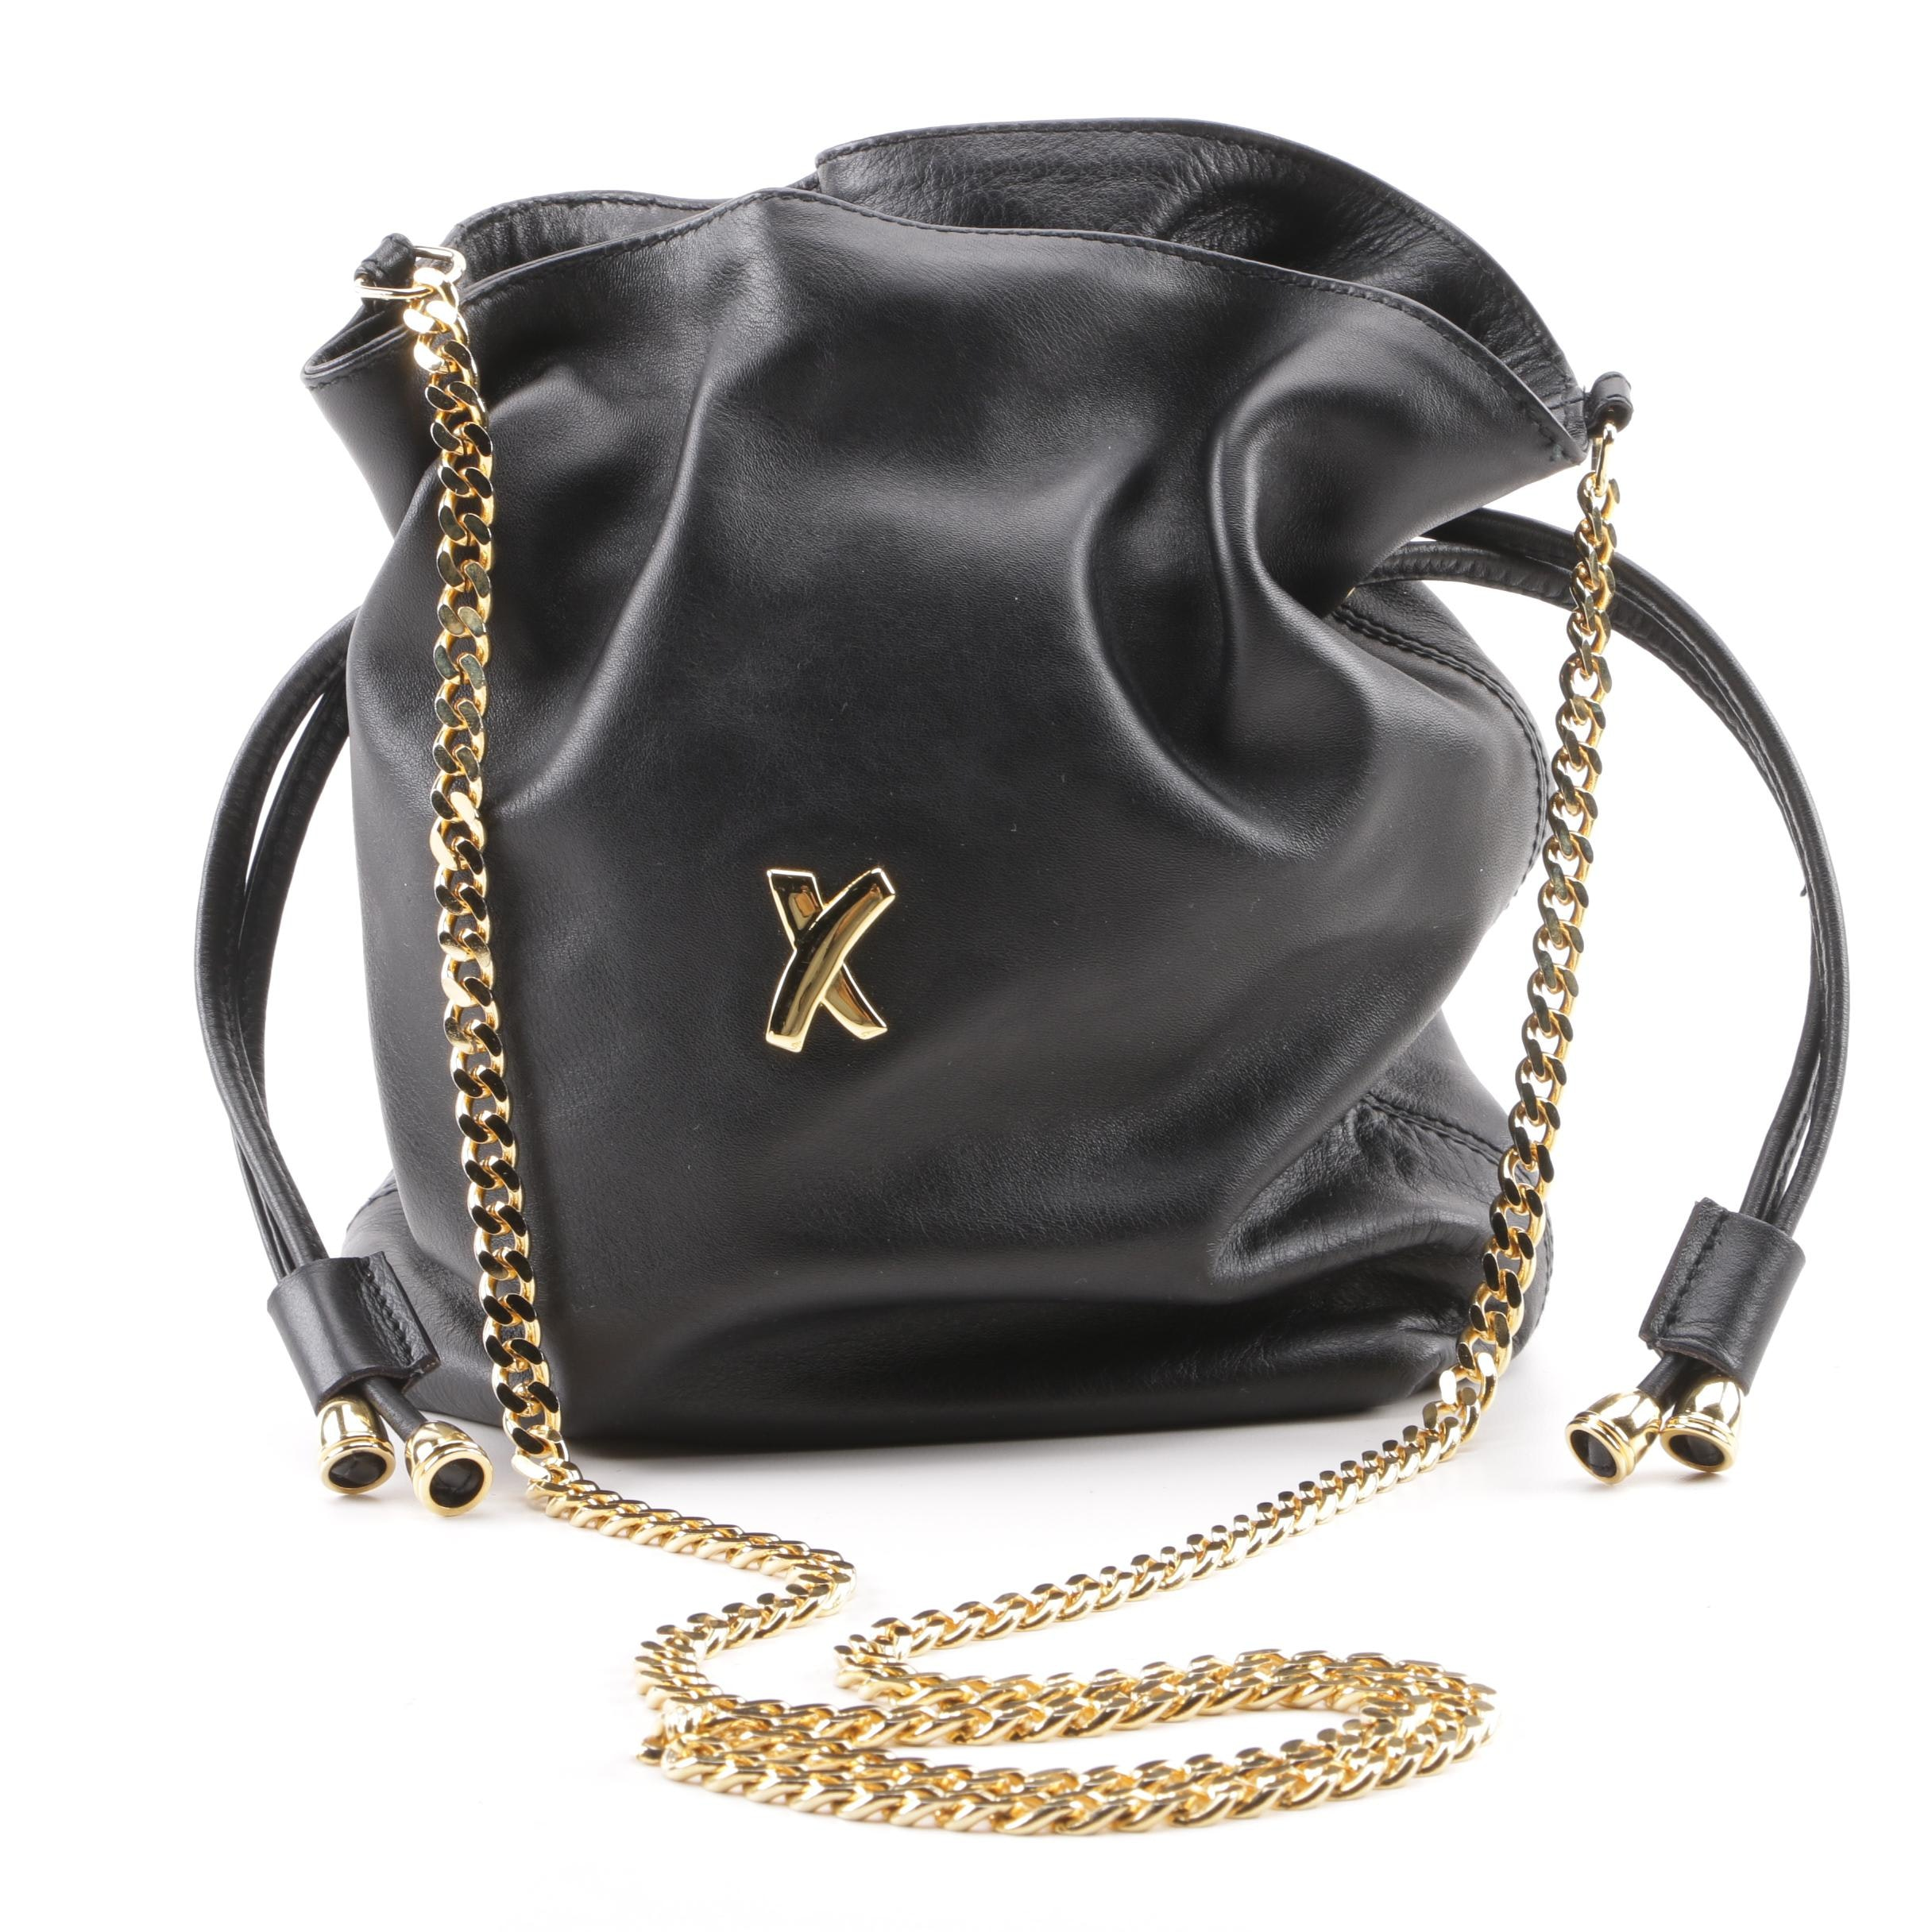 Paloma Picasso Black Leather Drawstring Shoulder Bag, Made in Italy